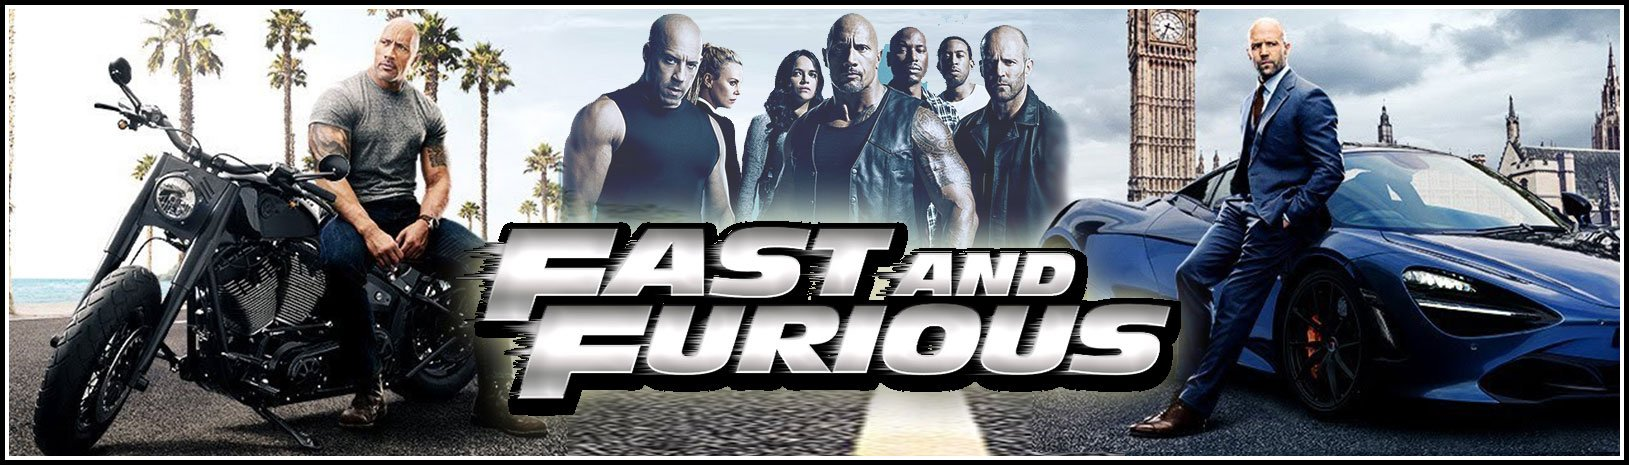 Fast And Furious Jackets